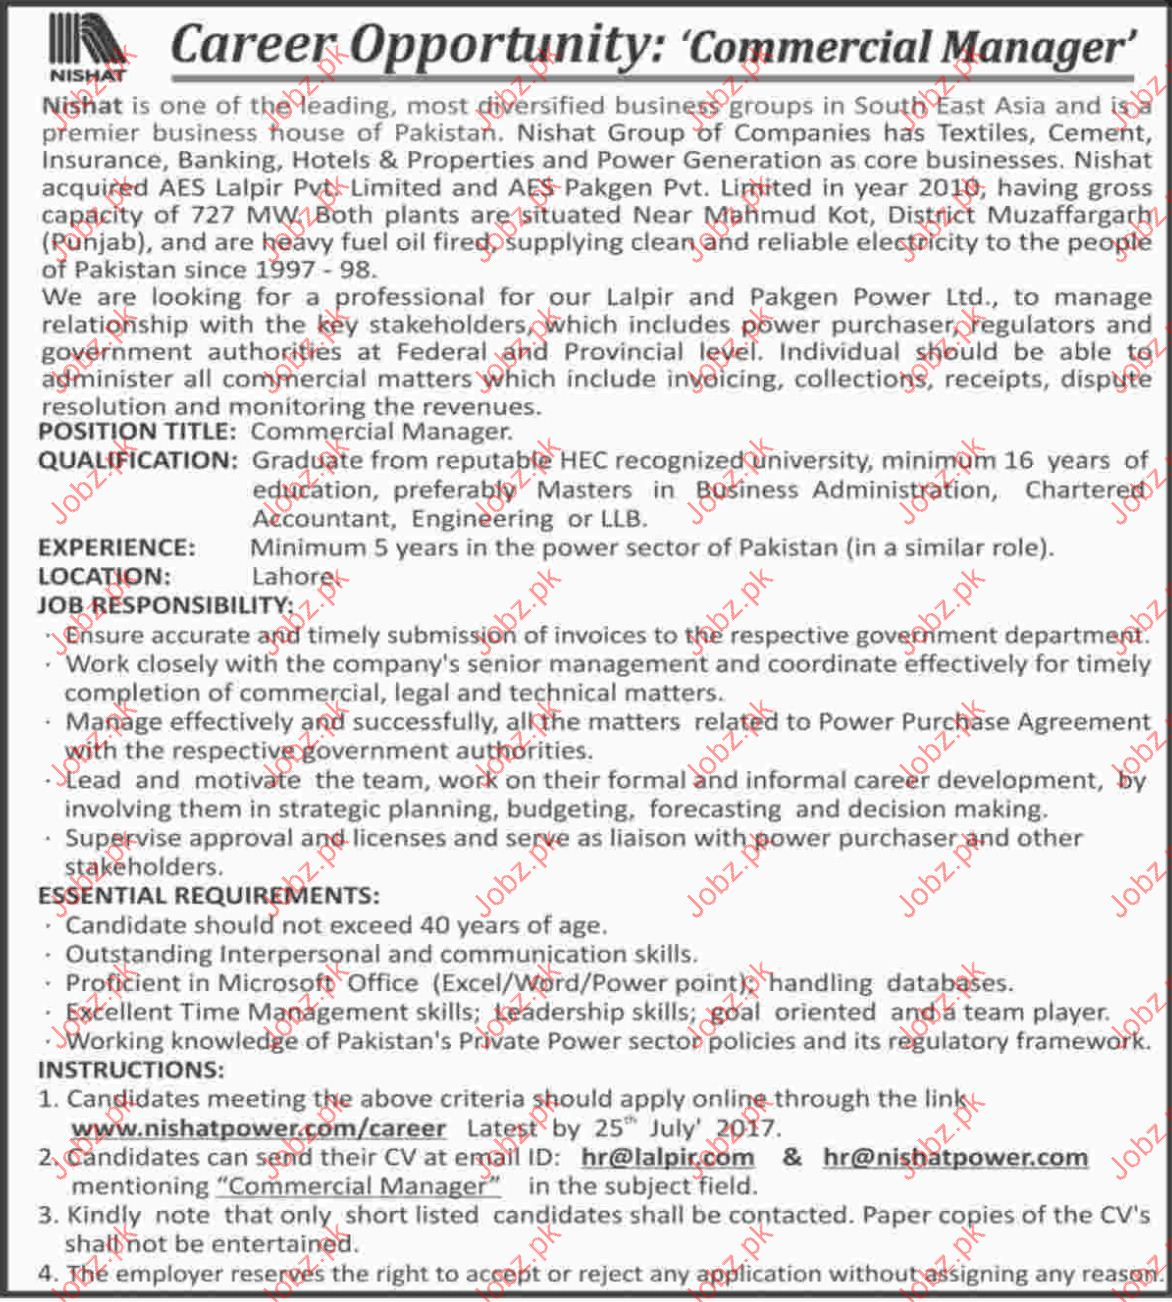 Commercial manager Required In Nishat Group Of Companies